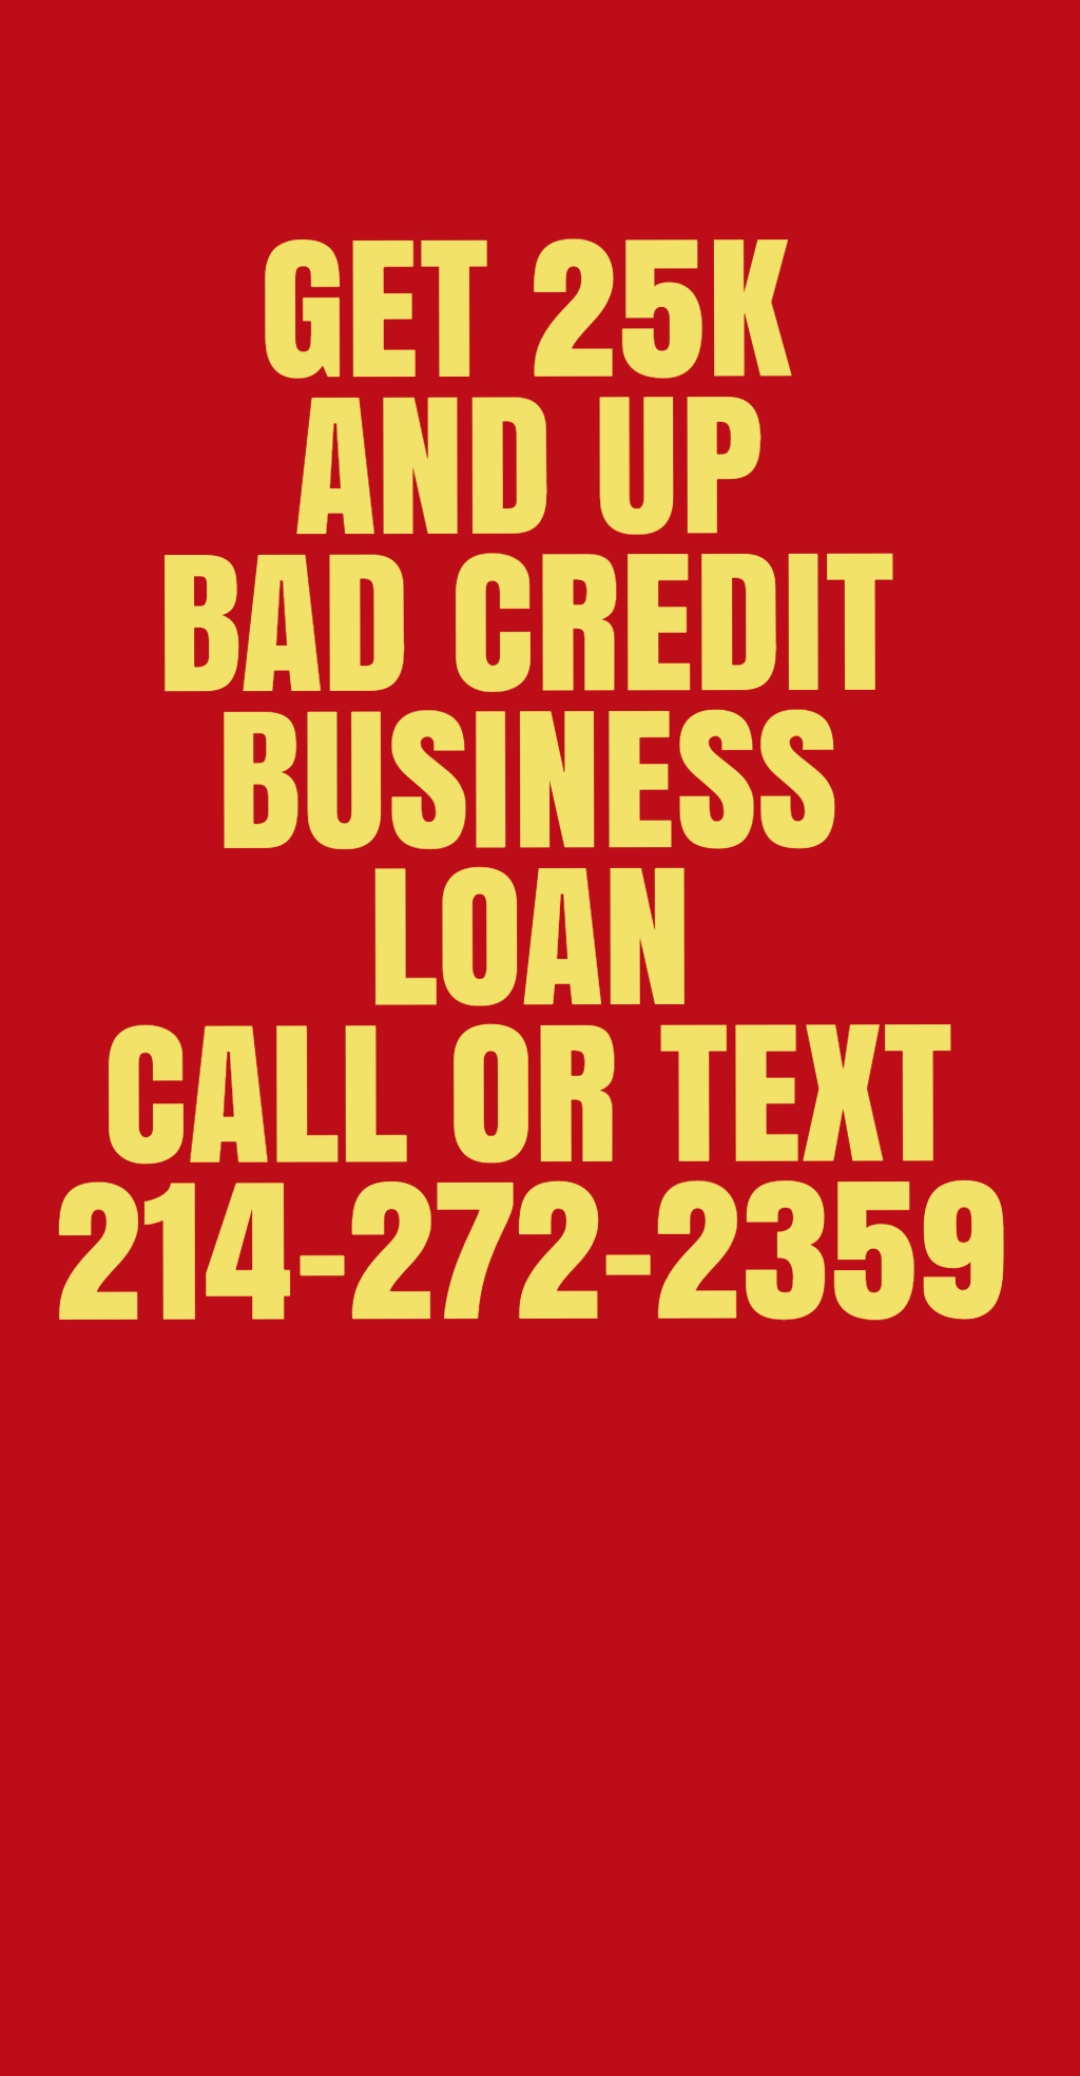 Bad credit business loans of $2,500 to $ 25,000